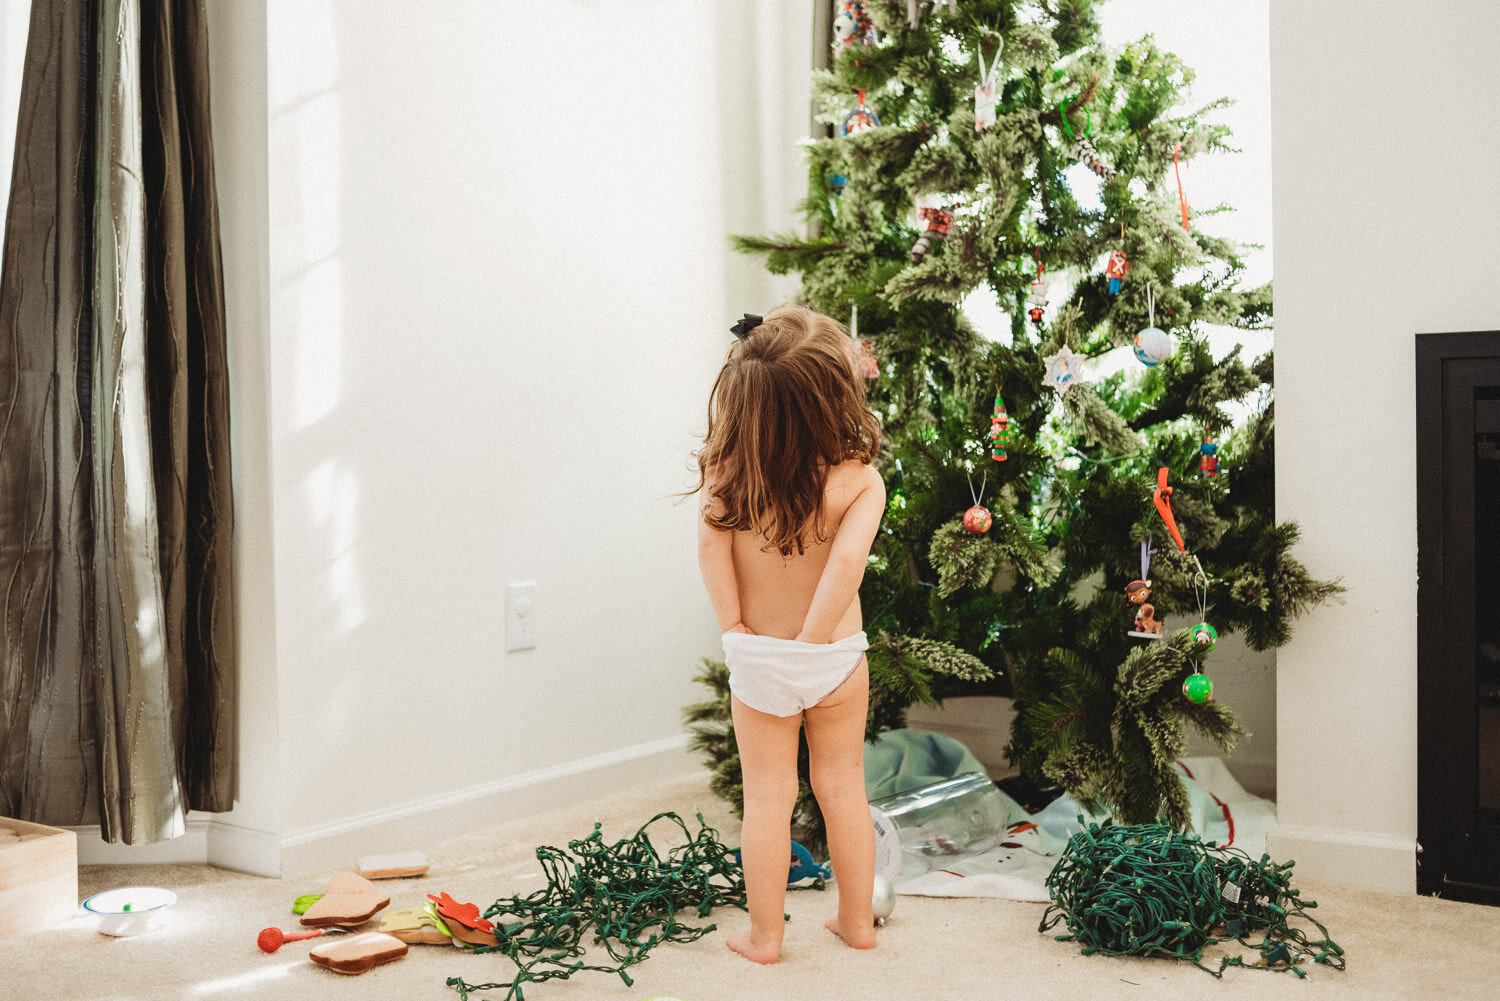 A little girl in her underwear stands in front of the Christmas tree.